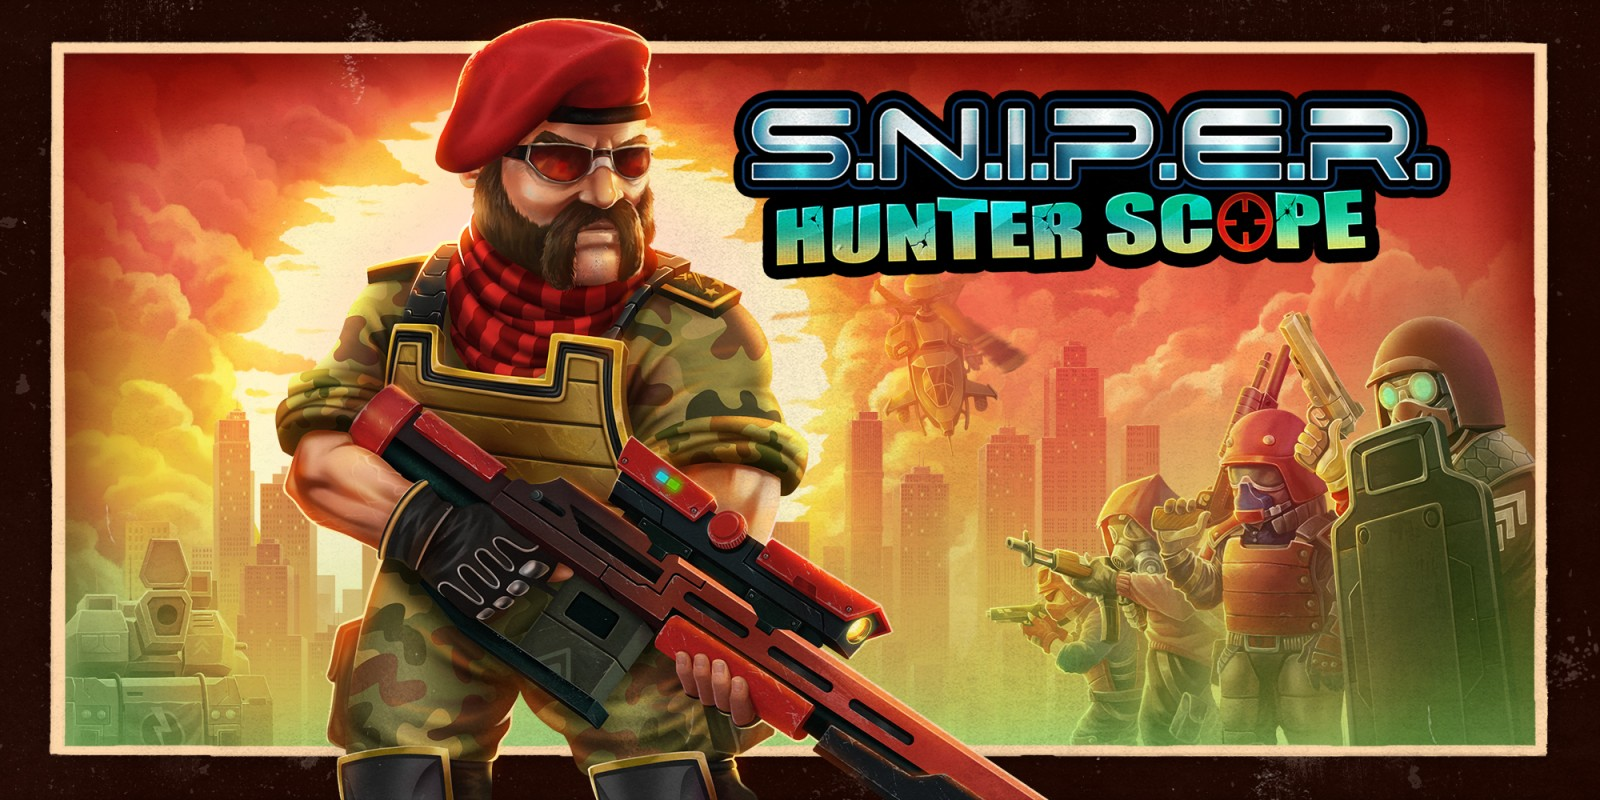 S.N.I.P.E.R. - Hunter Scope